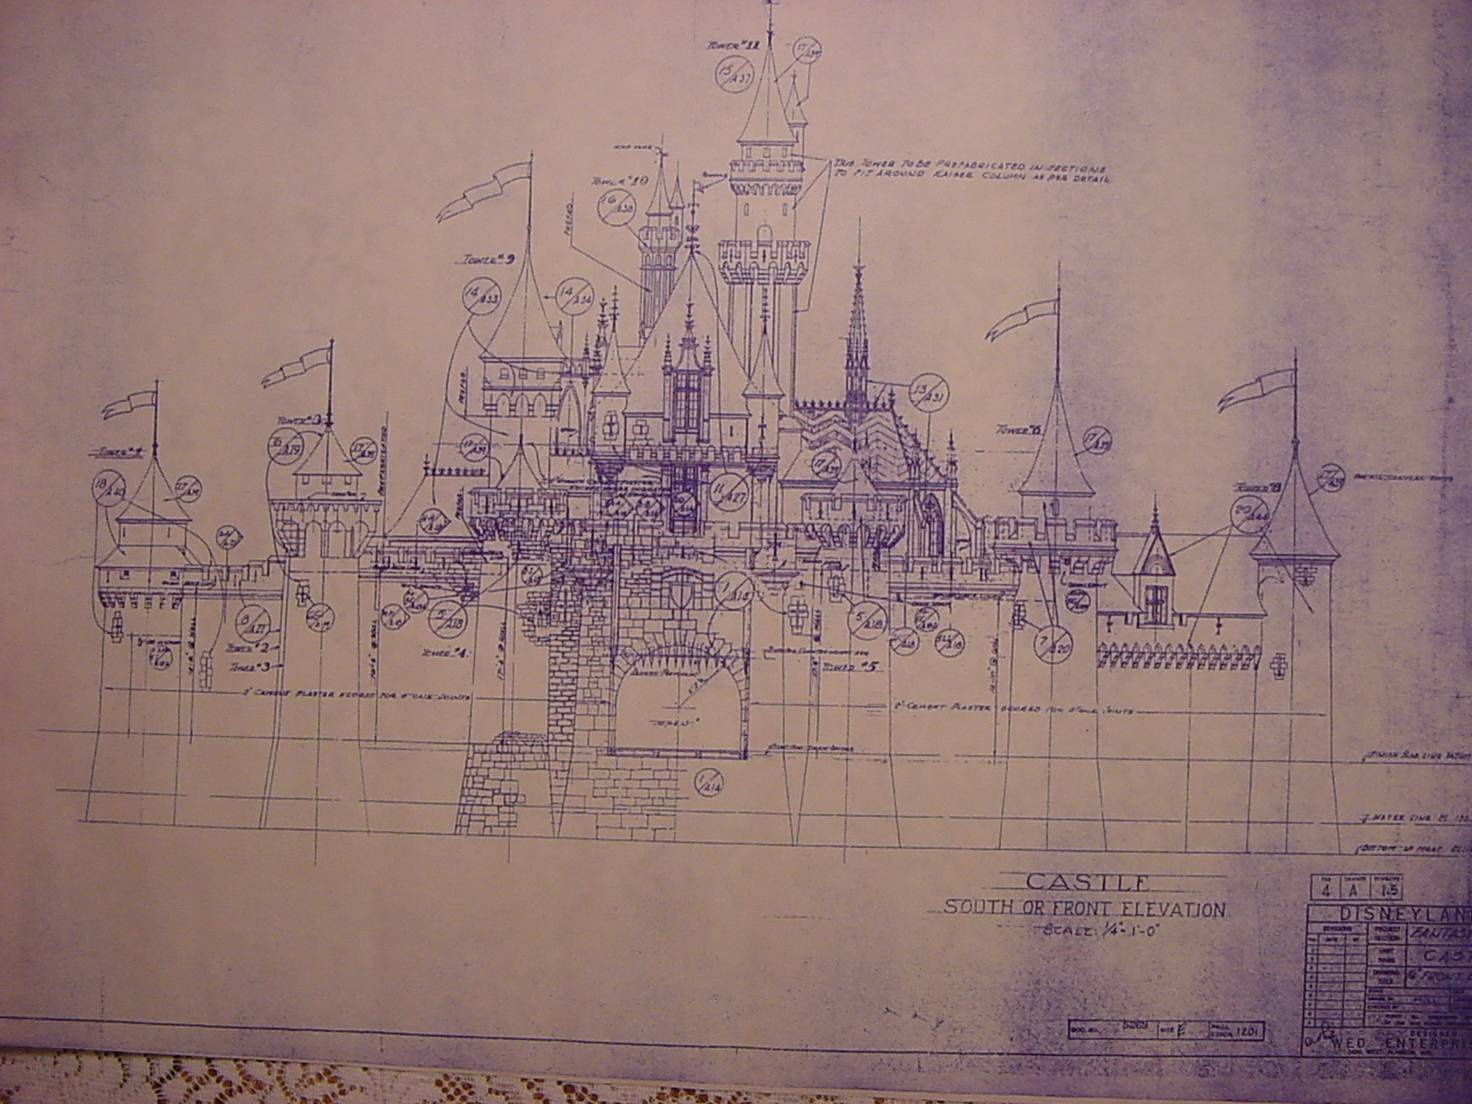 Disneyland Fantasyland Blueprints